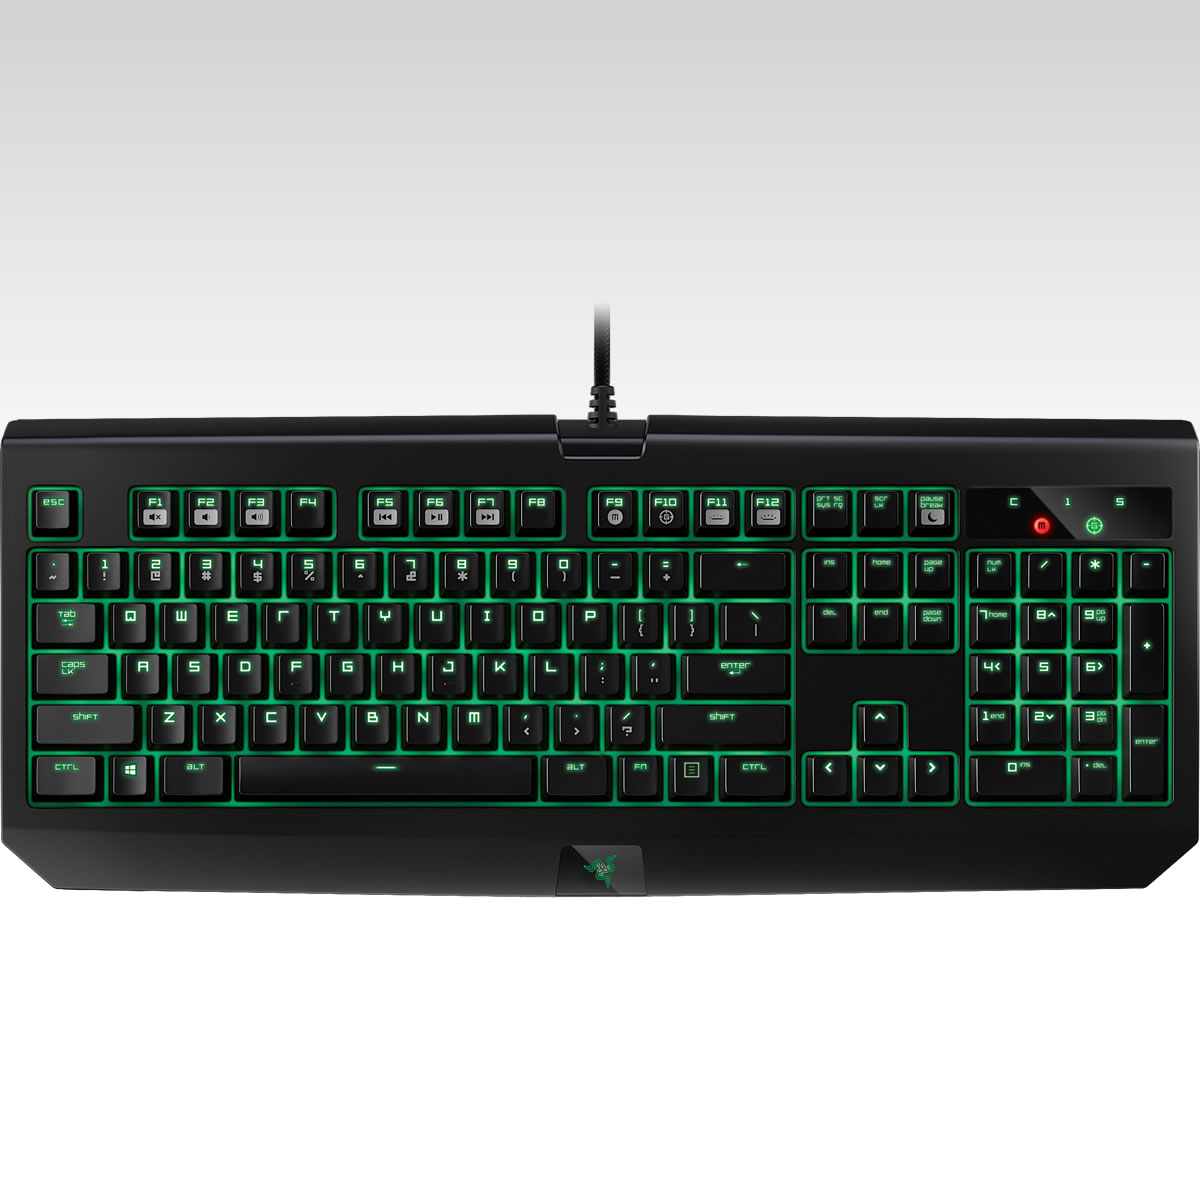 RAZER - BLACKWIDOW ULTIMATE 2016 MECHANICAL KEYBOARD [GREEK] RZ03-01701400-R3P1 (PC)